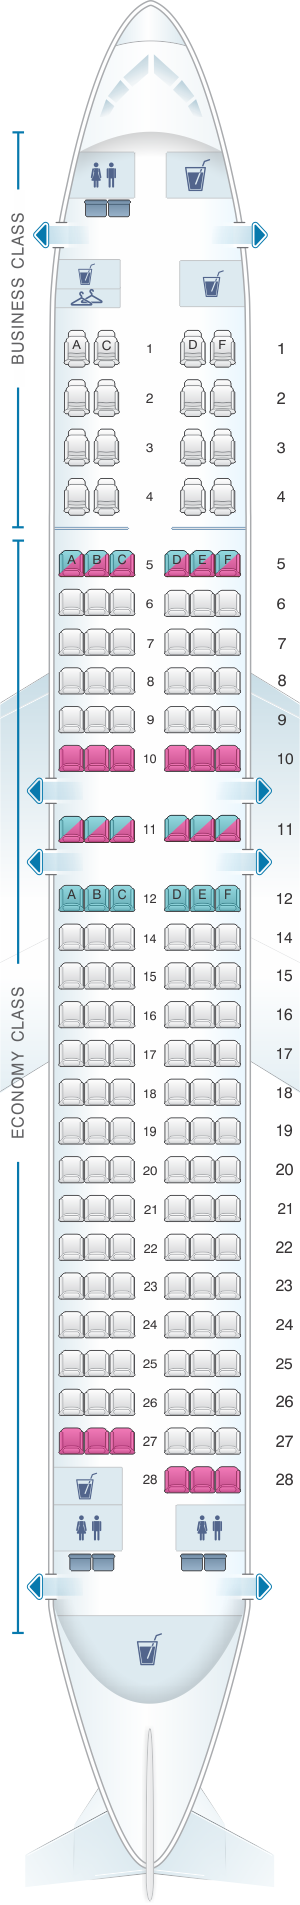 Seat map for Turkish Airlines Boeing B737 900ER